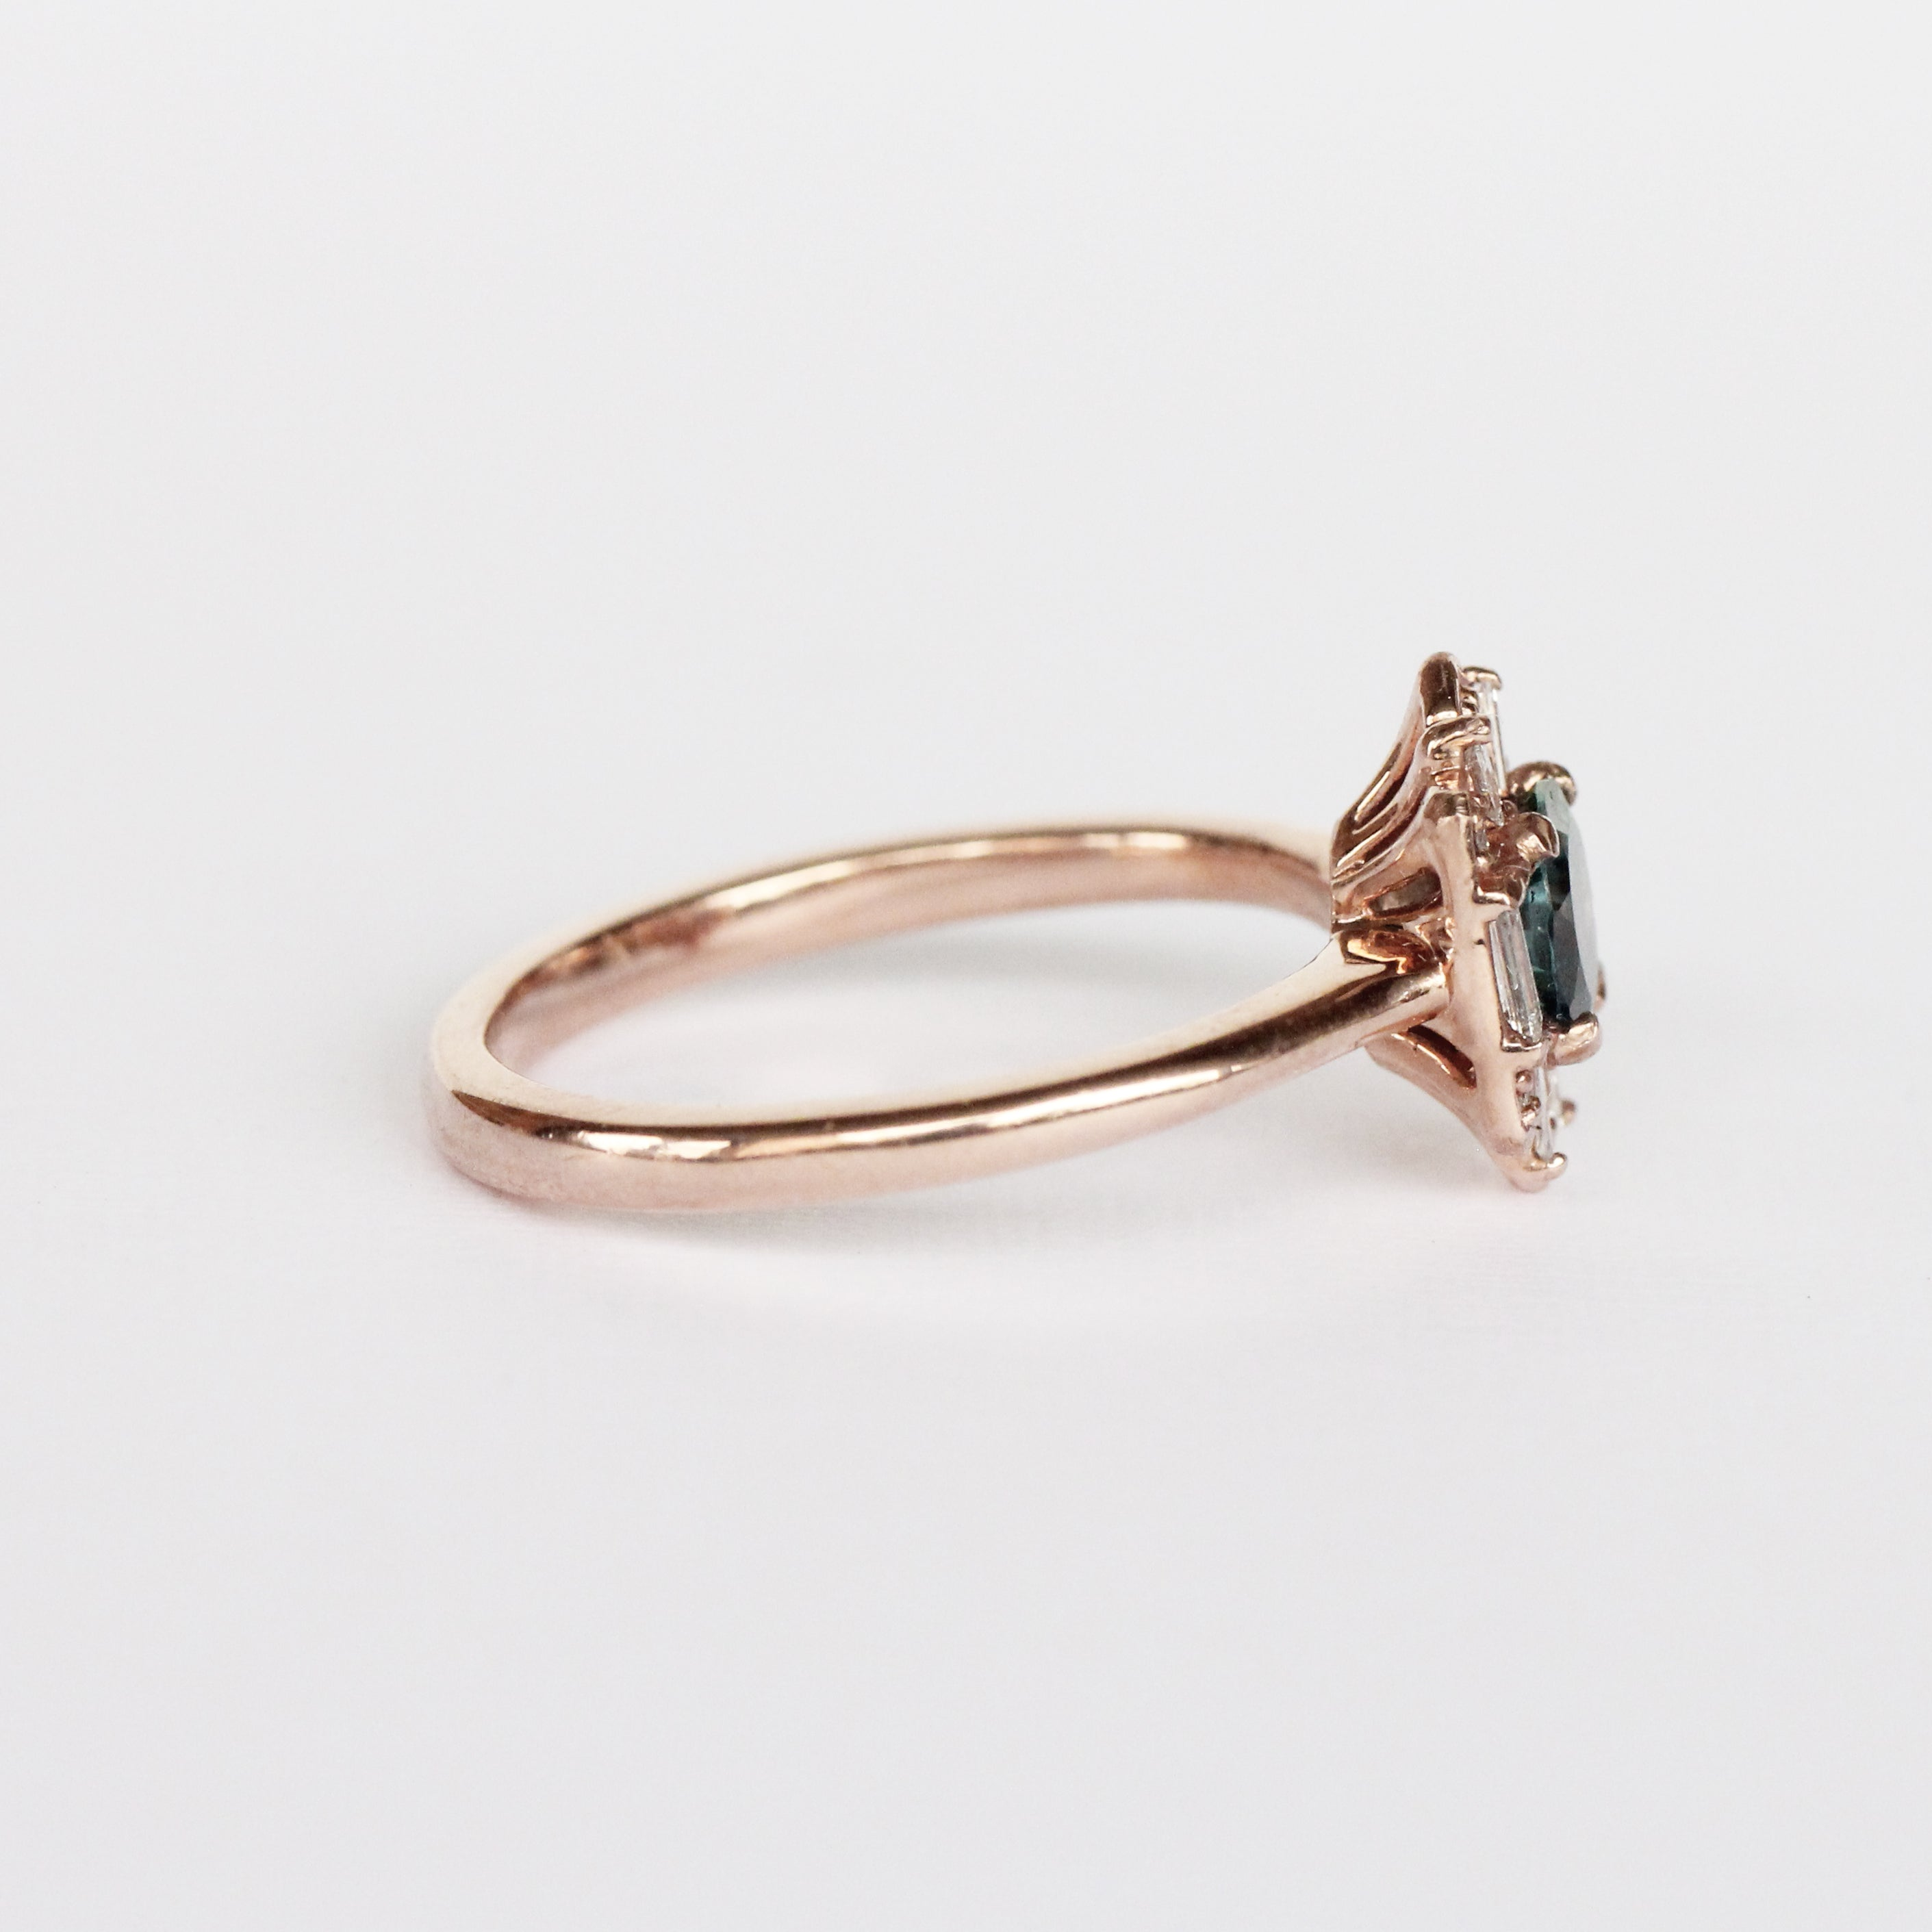 Geraldine Ring with a Peacock Sapphire and Diamond Accents in 10k Rose Gold - Ready to Size and Ship - Celestial Diamonds ® by Midwinter Co.